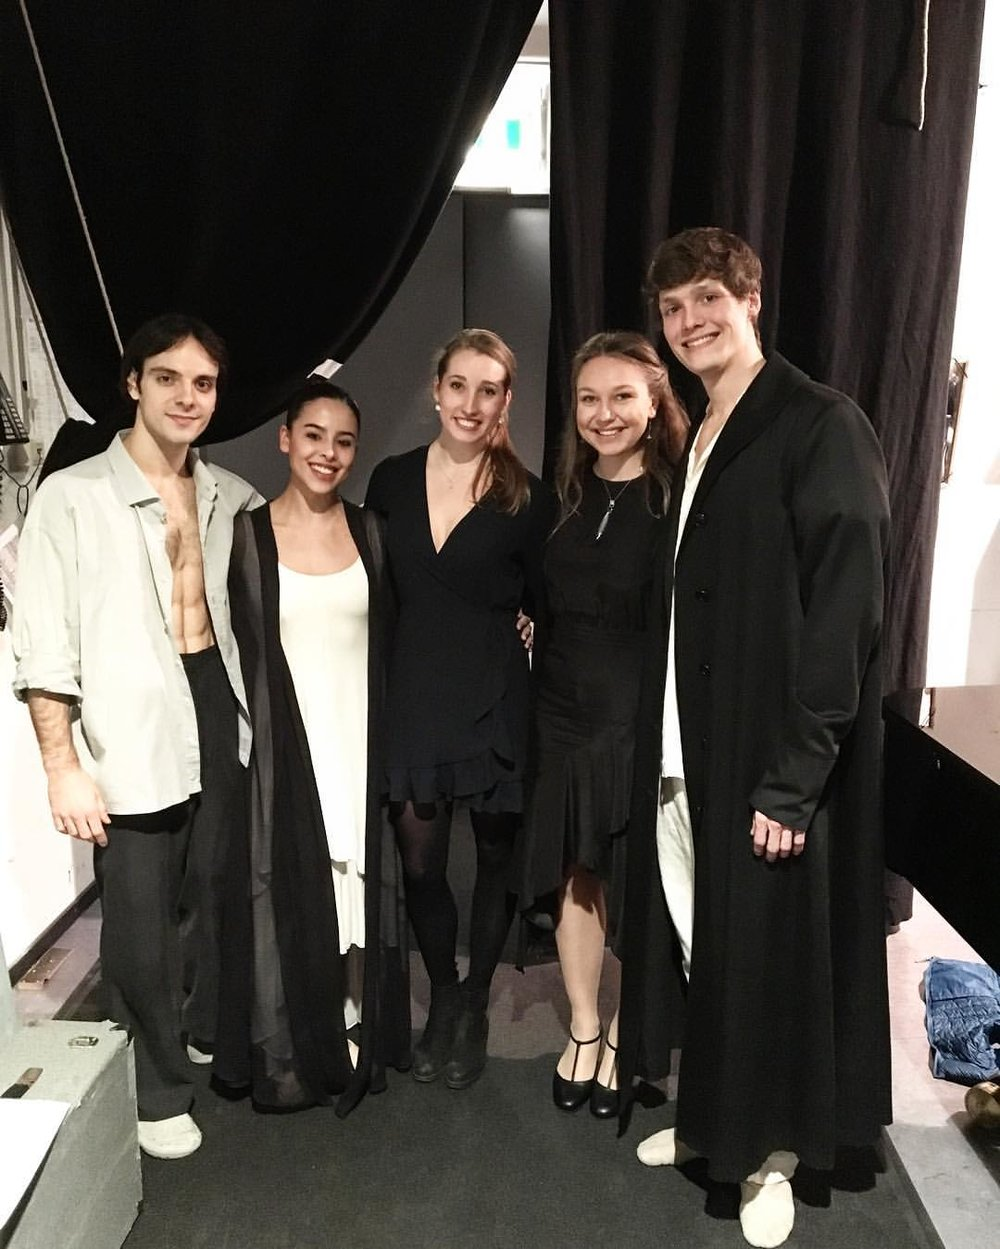 14th March 2017, following the second performance.   From the left: Nicolas Gl  ä  ssman, Winnie Dias, Hayley Page, Kirsten Milenko, Florian Pohl.